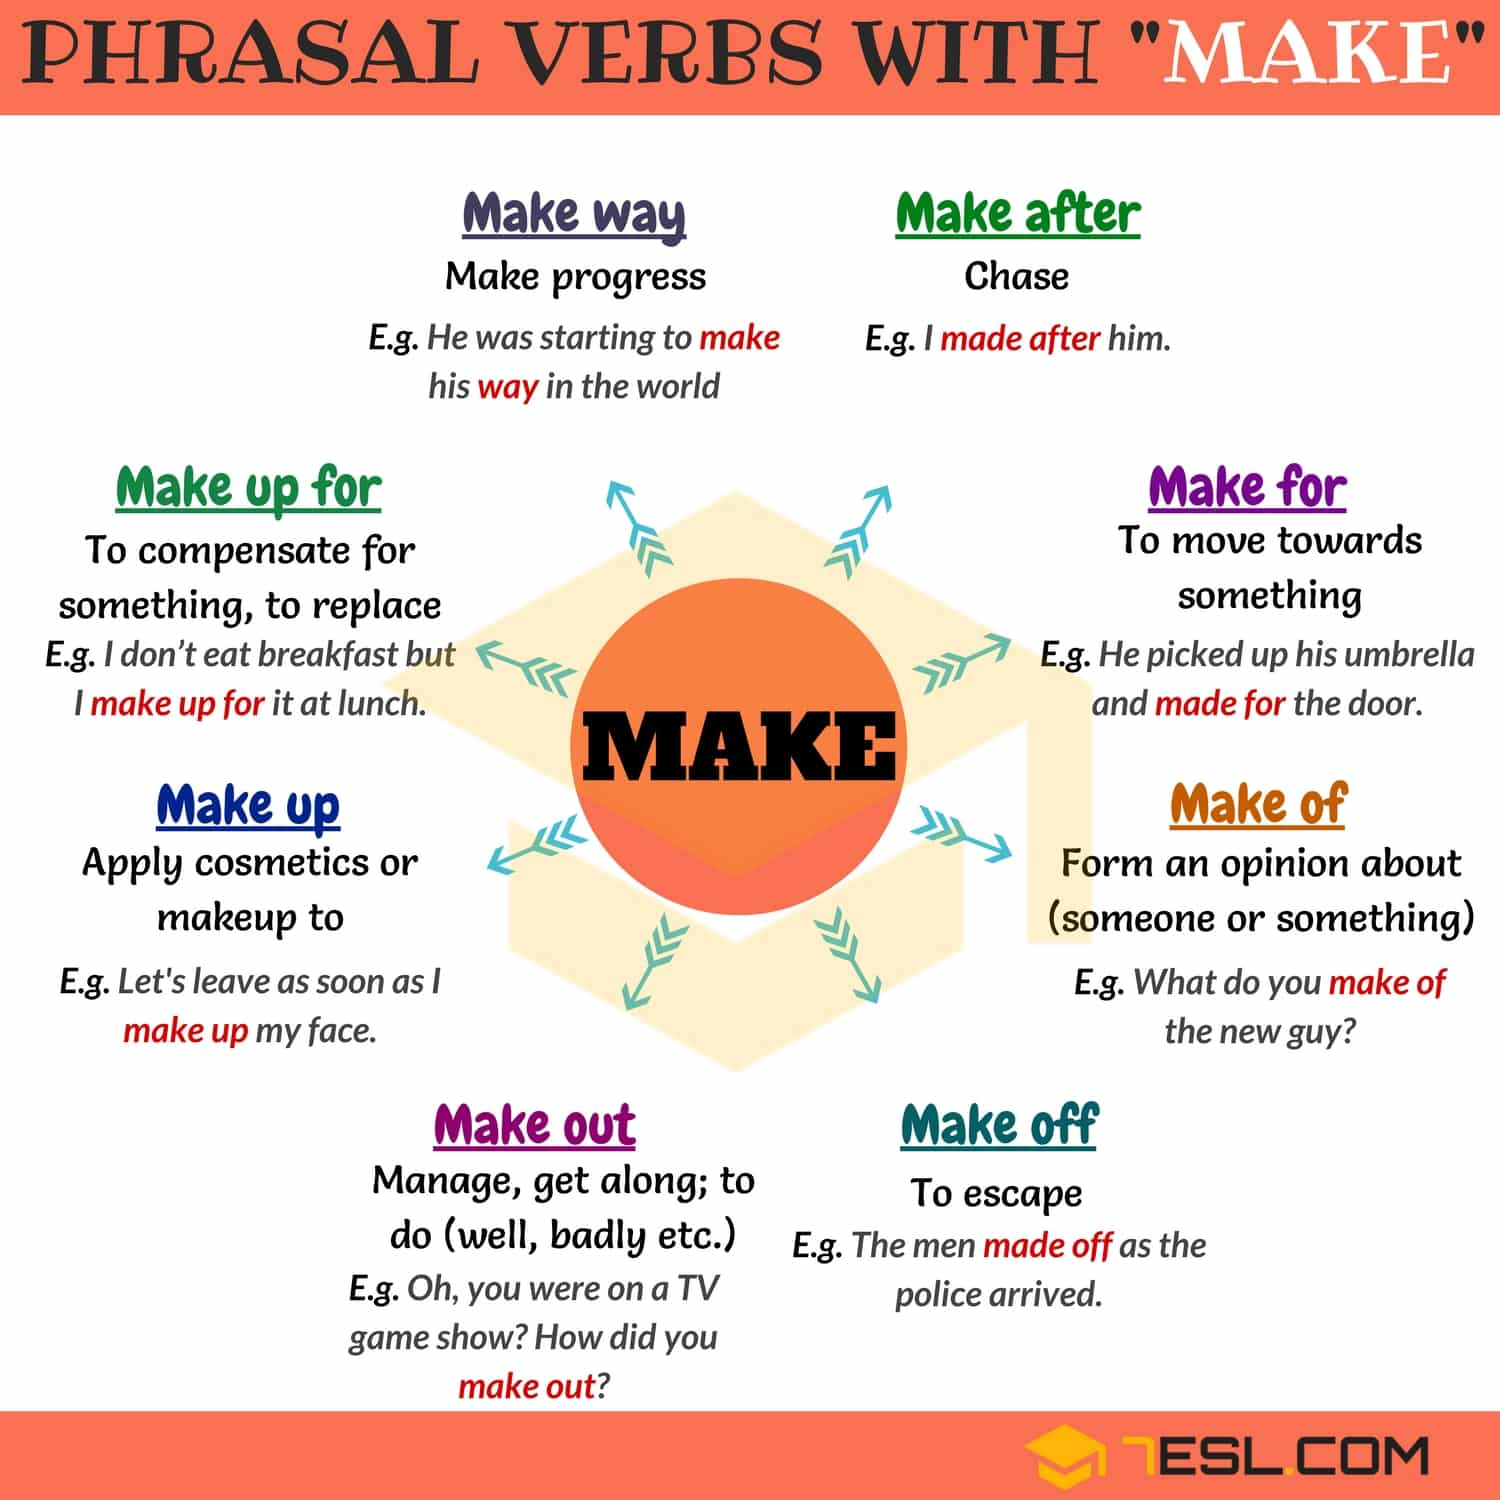 Verb makemade - the most important 59